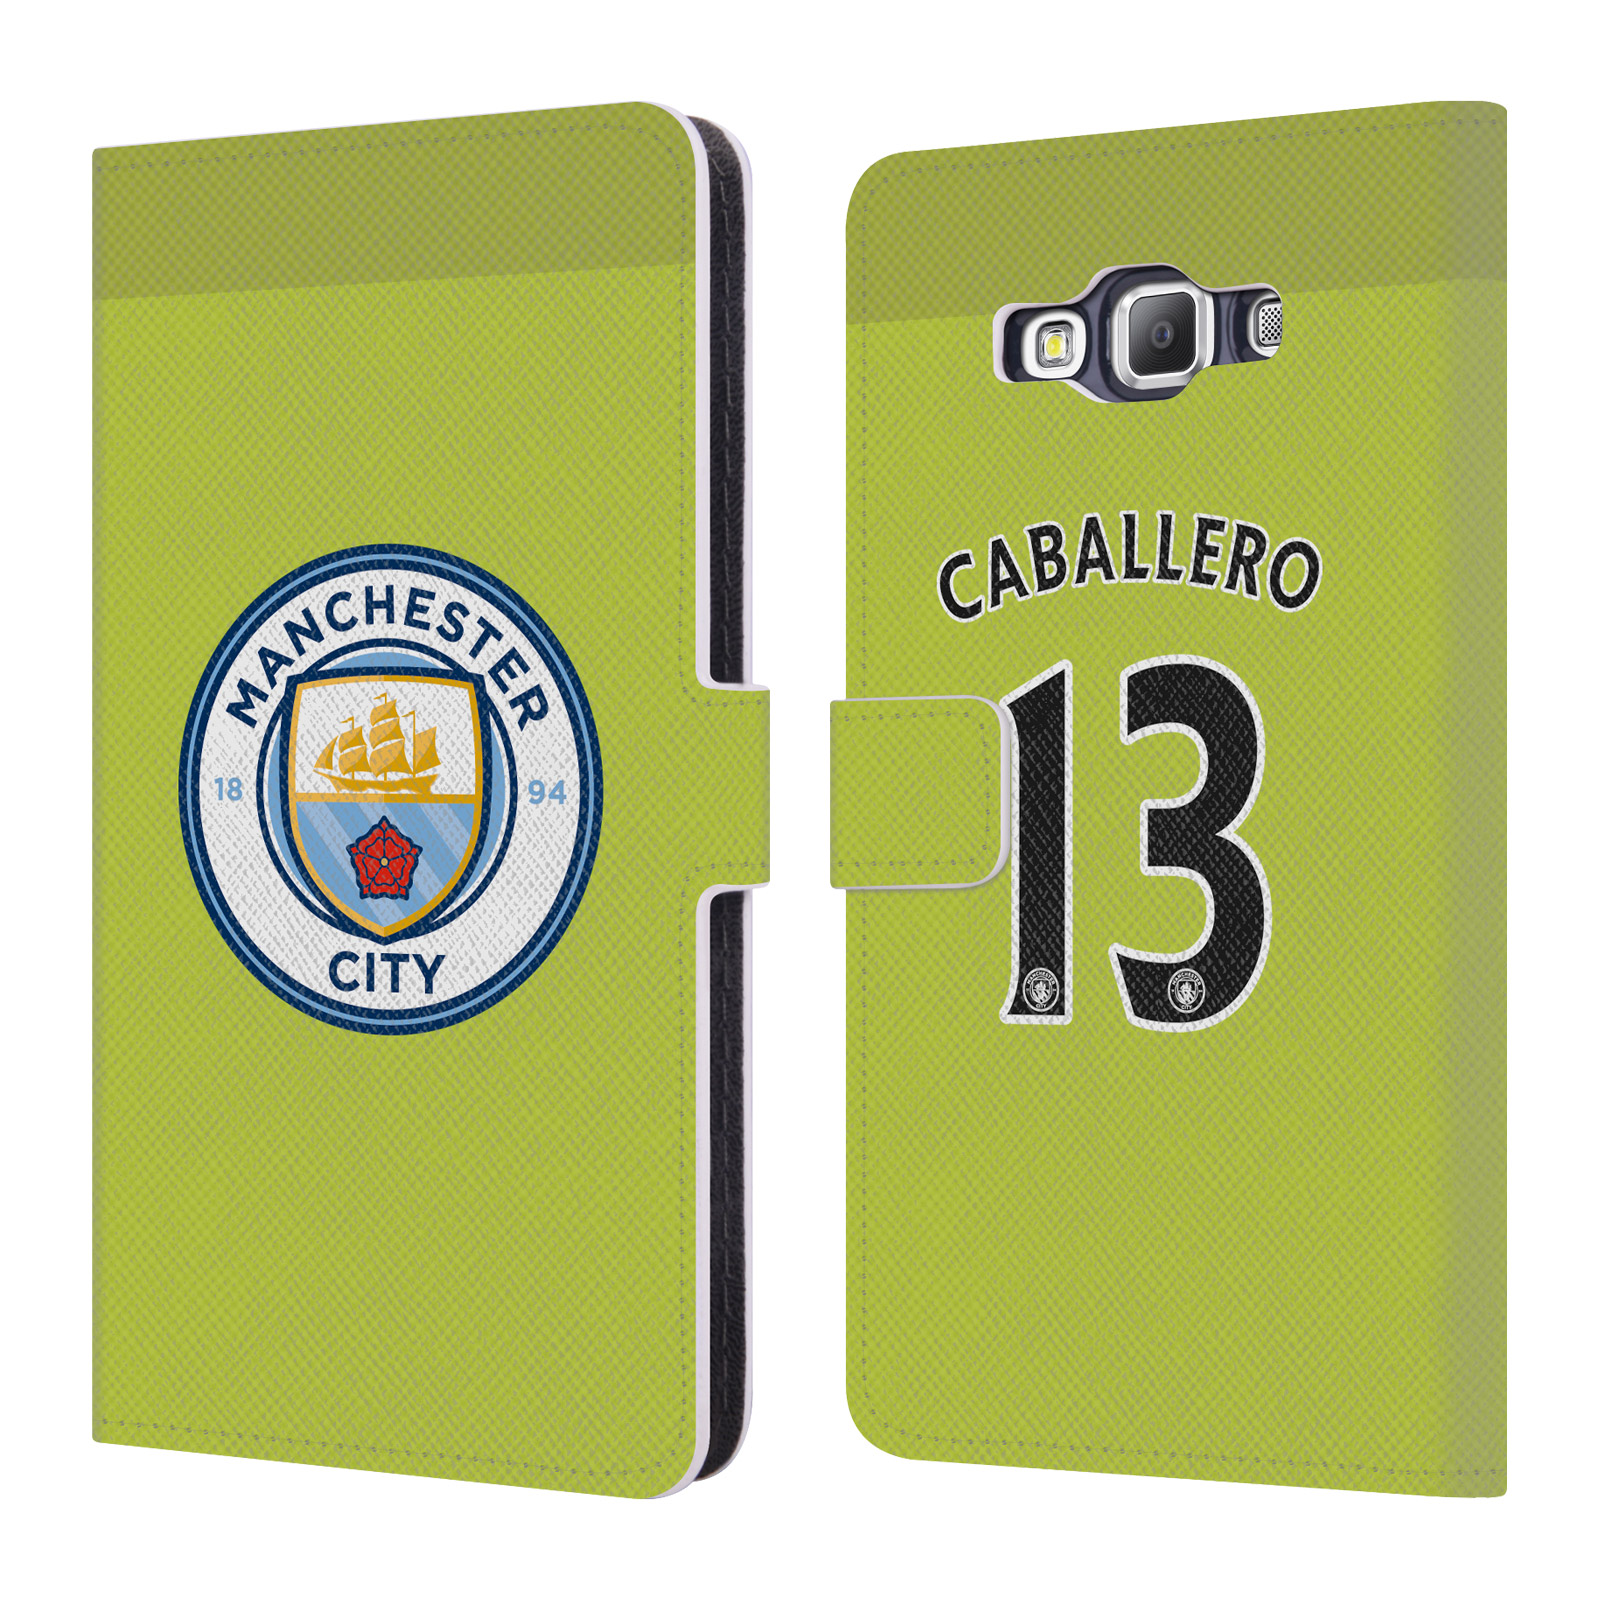 OFFICIAL MANCHESTER CITY MAN CITY FC PLAYER HOME KIT 2016/17 GROUP 1 LEATHER BOOK WALLET CASE COVER FOR SAMSUNG PHONES 2